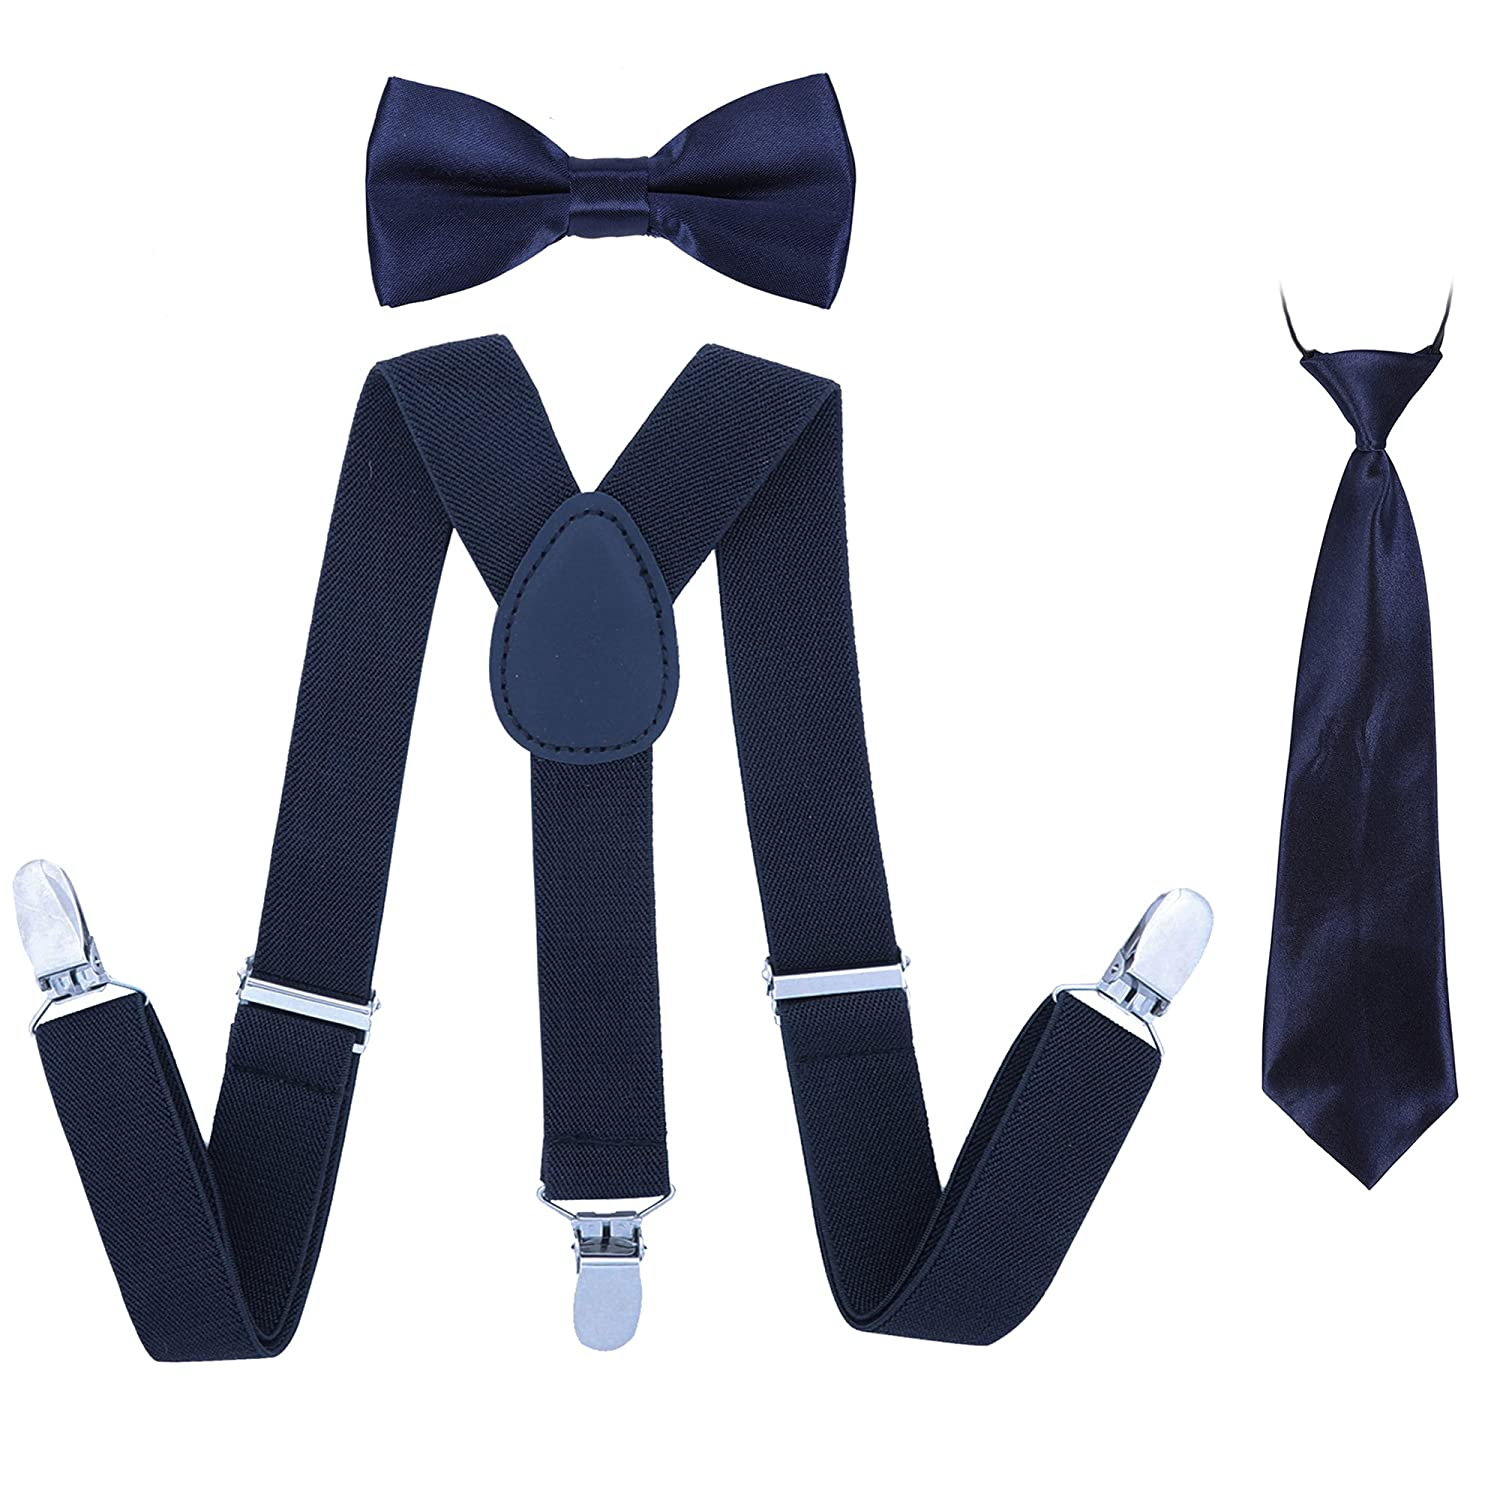 Boys Suspender Bowtie Necktie Sets - Adjustable Elastic Classic Accessory Sets for Boys & Girls (Navy Blue) Jerrybaby